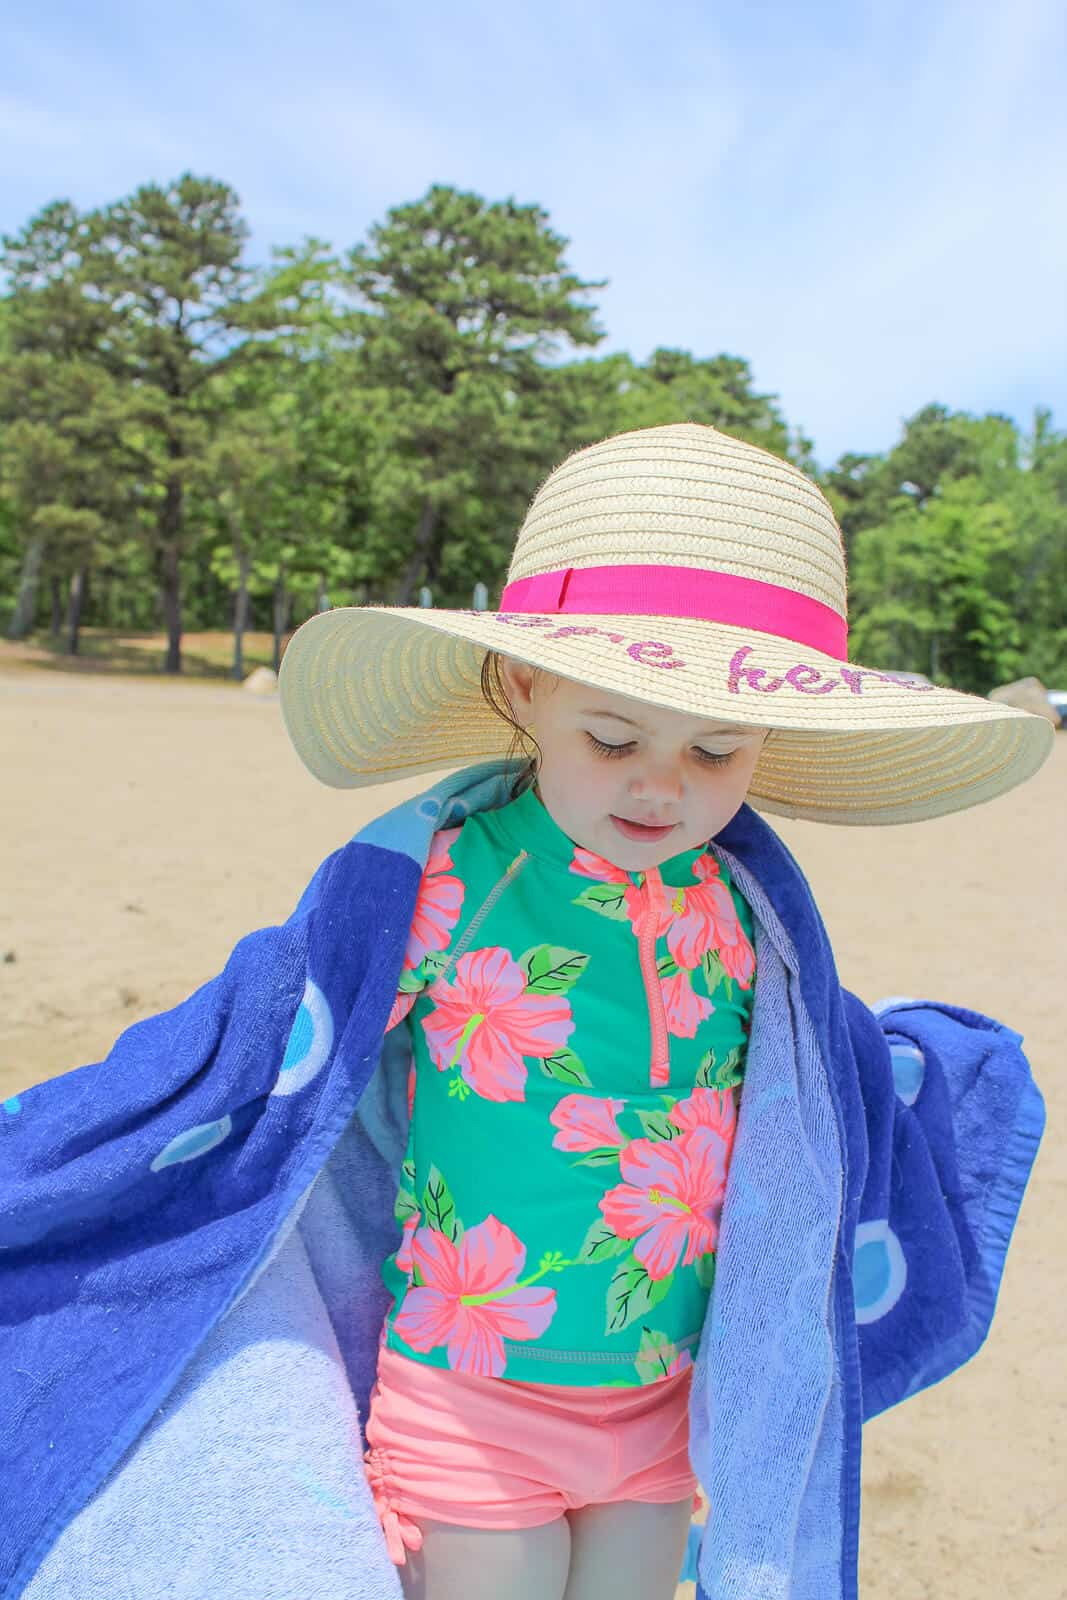 Baby wears large summer hat at beach.